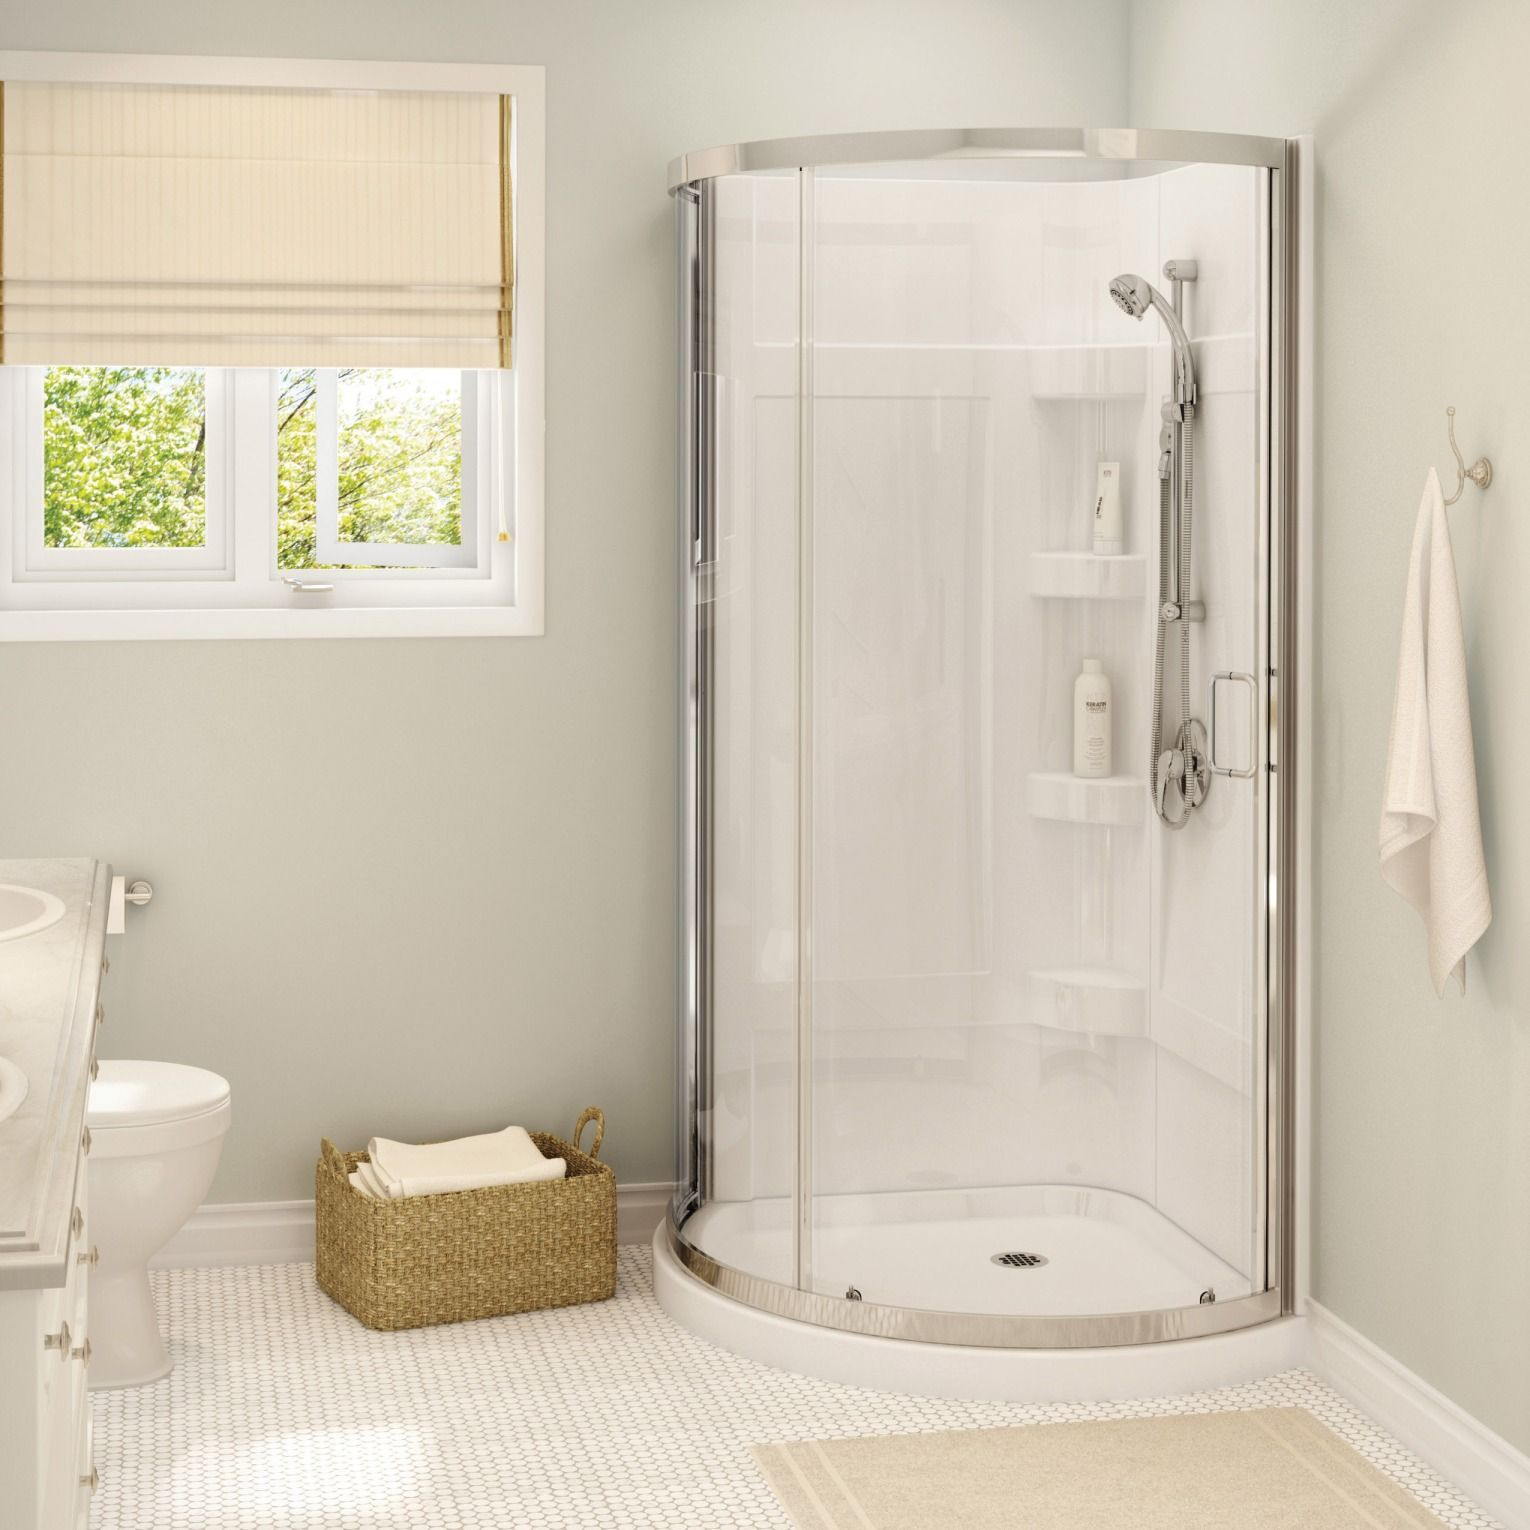 The Maax® Cyrene Shower Kit combines simplicity and elegance ...